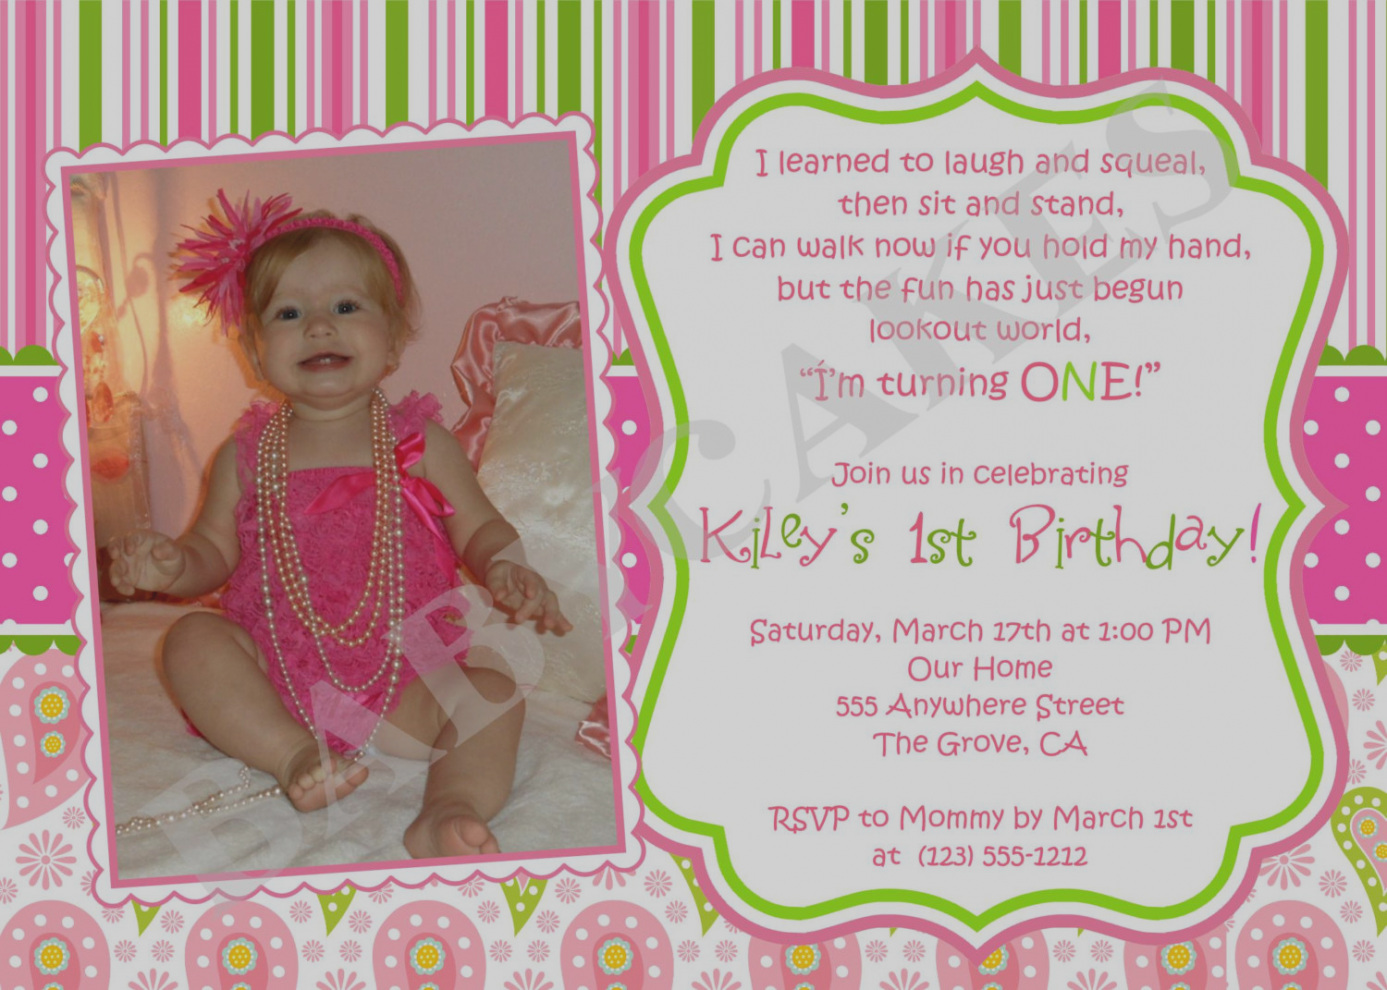 1st birthday girl message ; elegant-1st-birthday-invitation-message-for-baby-girl-first-messages-best-party-ideas